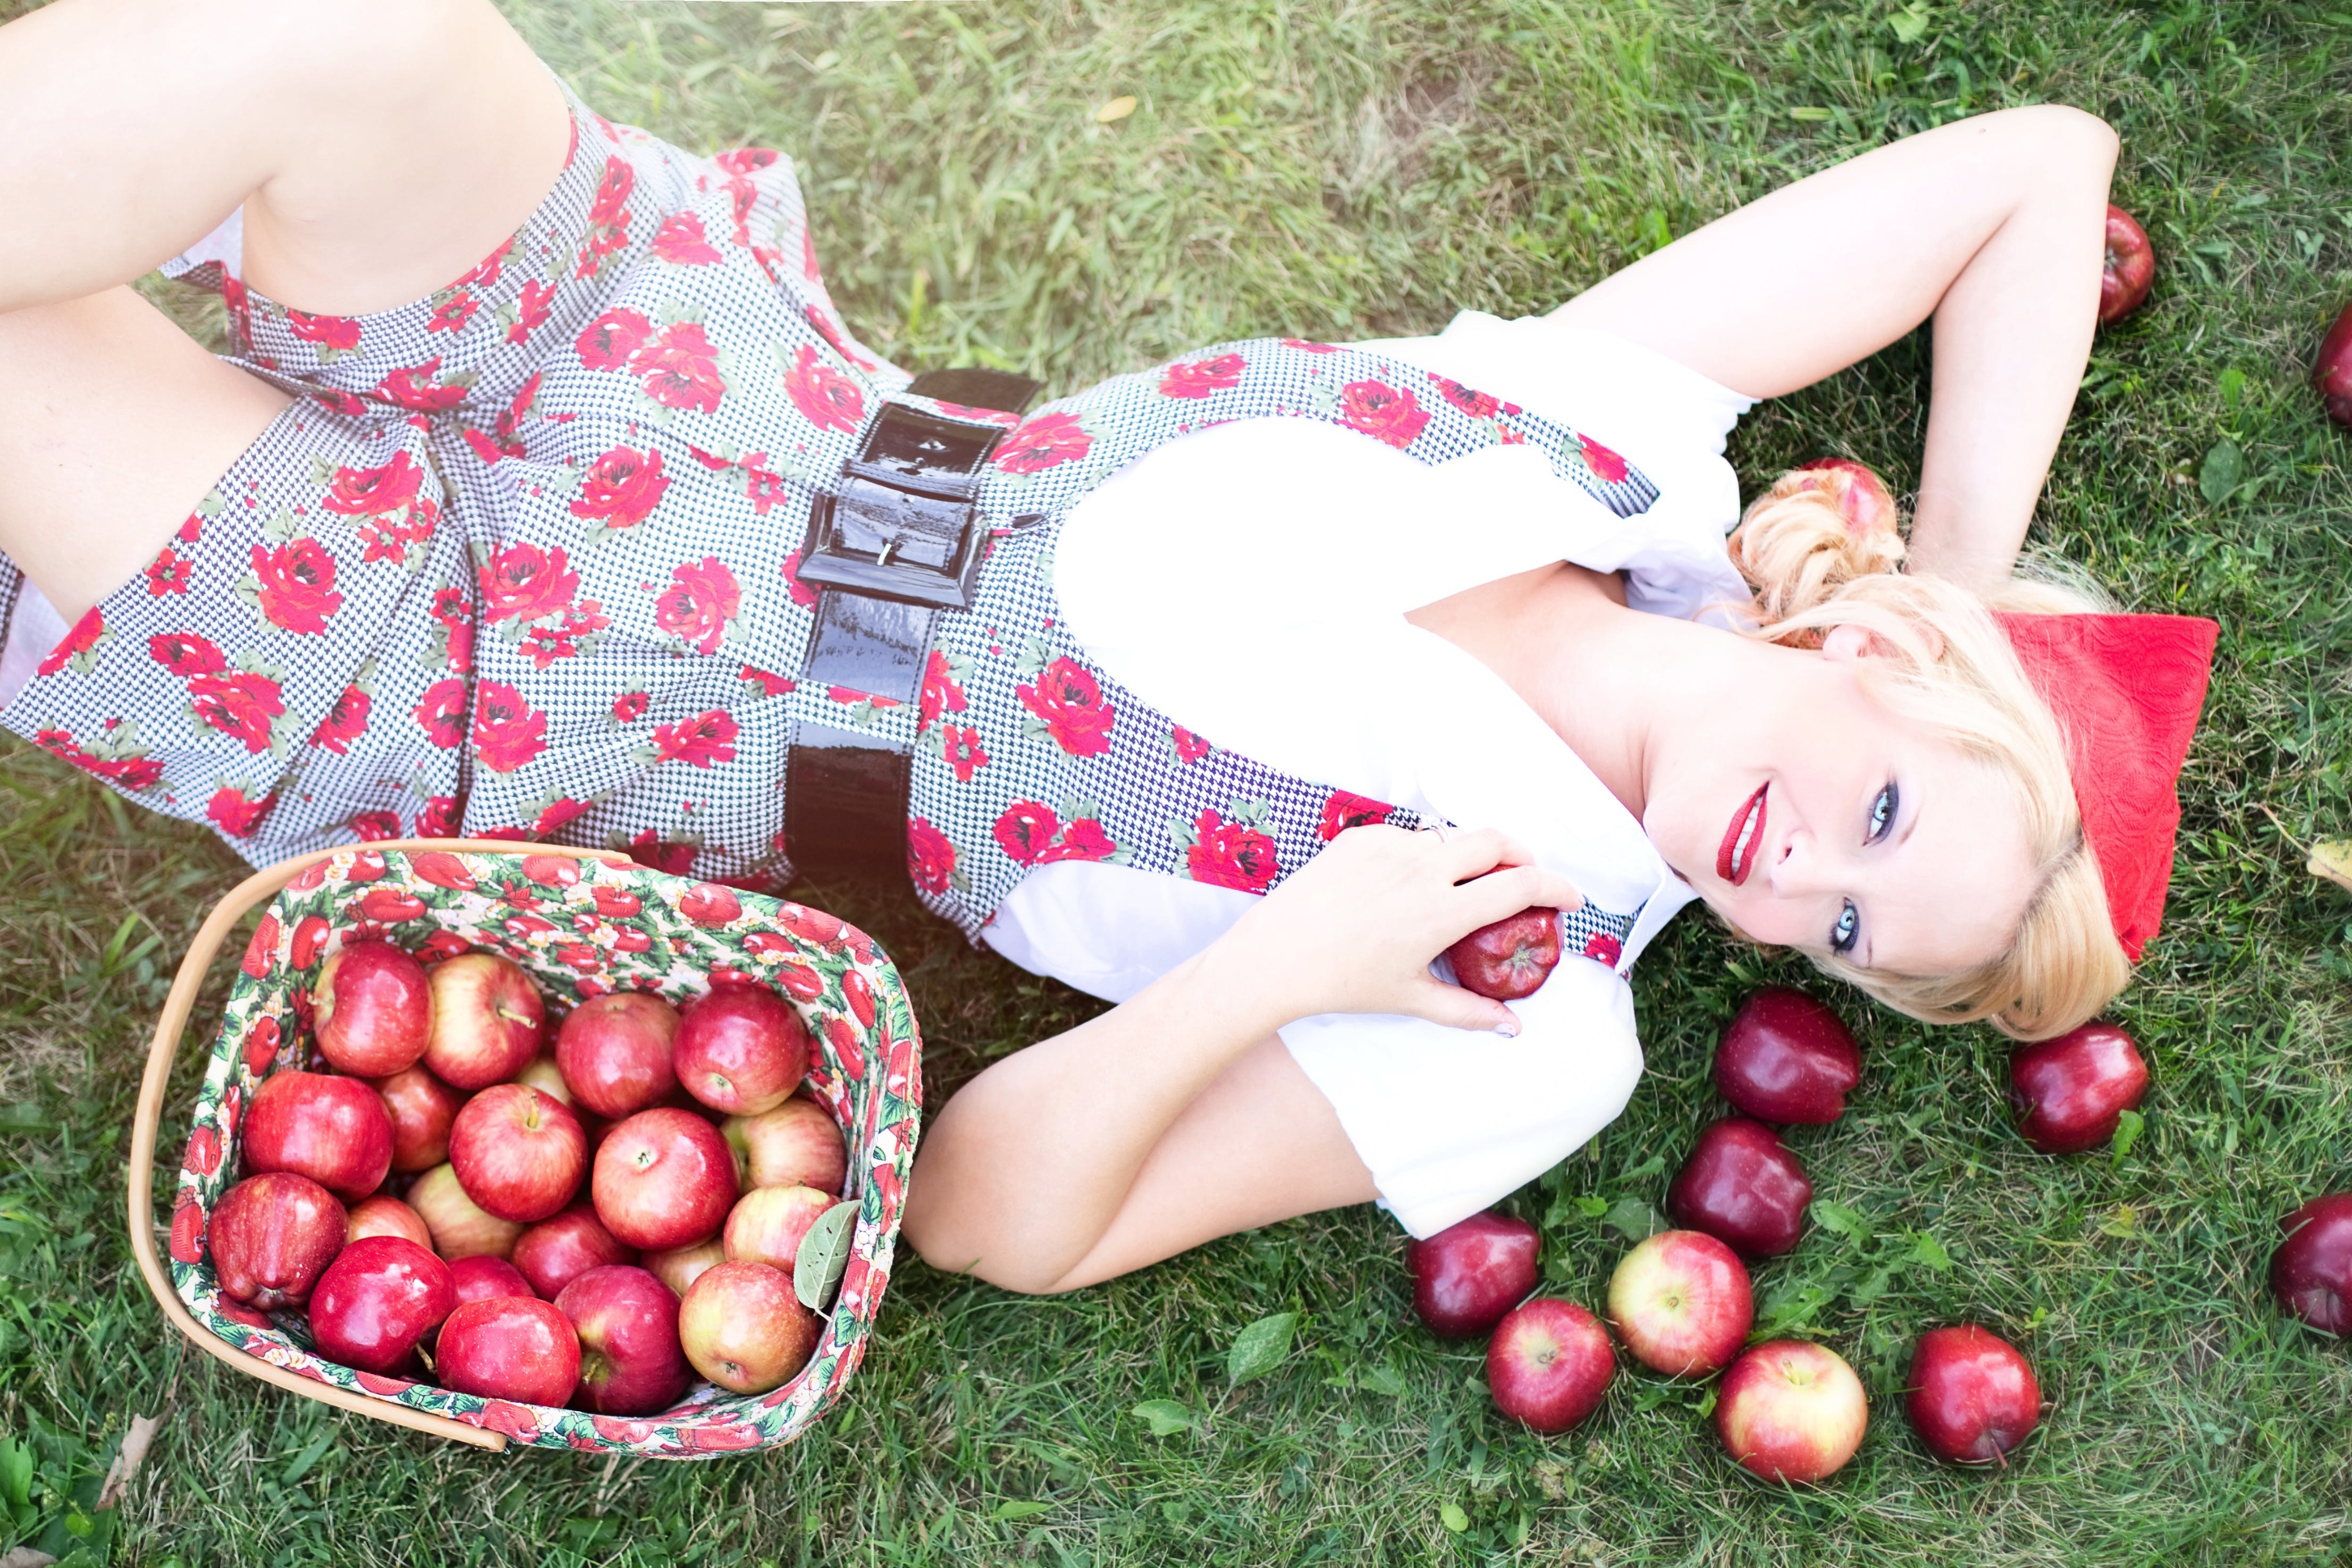 Woman in Gray and White Rose Print Onesies Laying on Grass Beside Red Apple Fruits